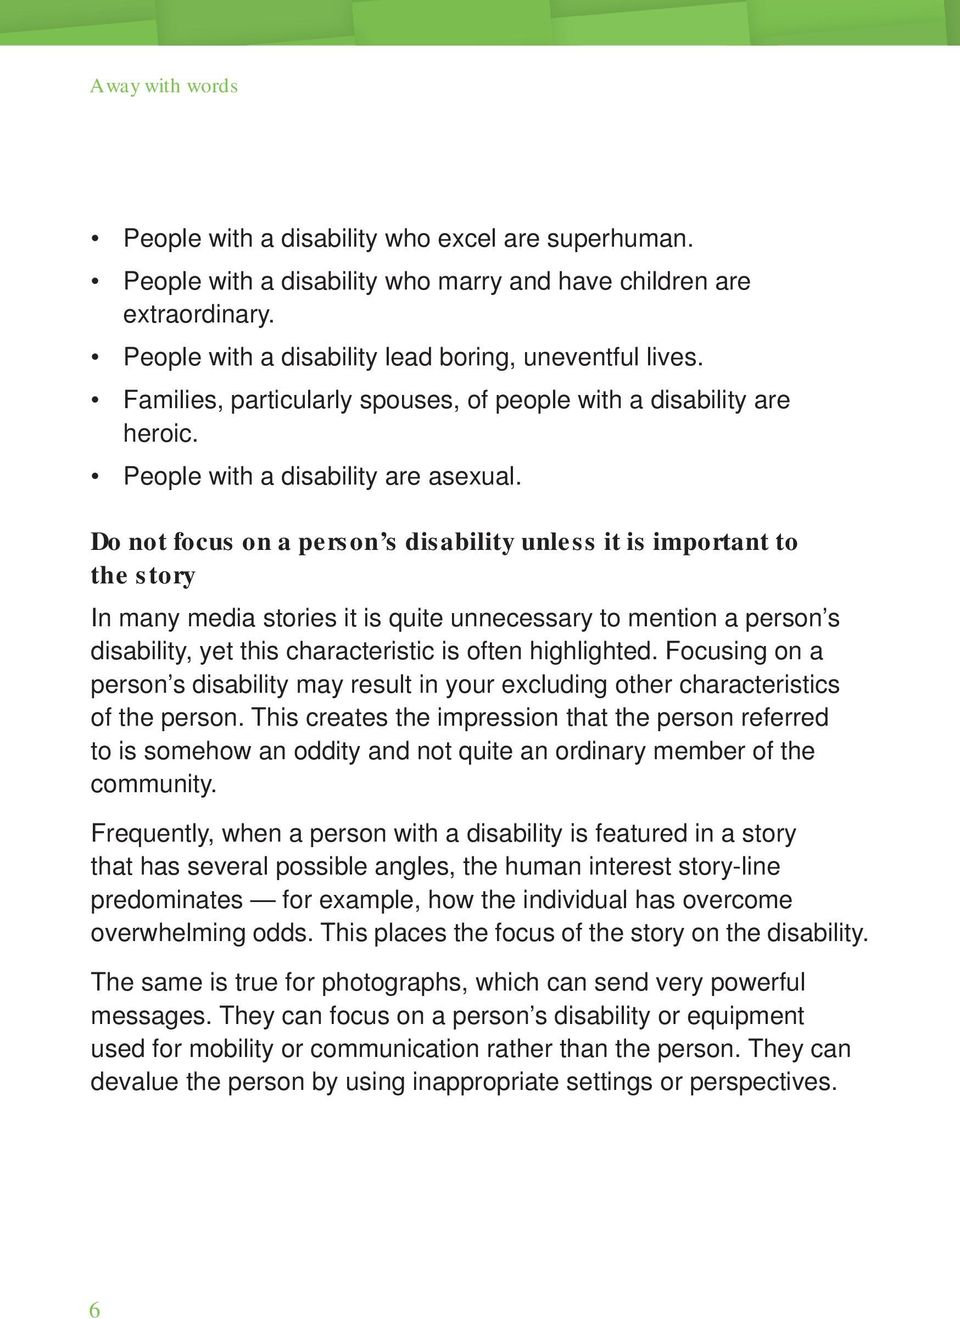 Do not focus on a person s disability unless it is important to the story In many media stories it is quite unnecessary to mention a person s disability, yet this characteristic is often highlighted.